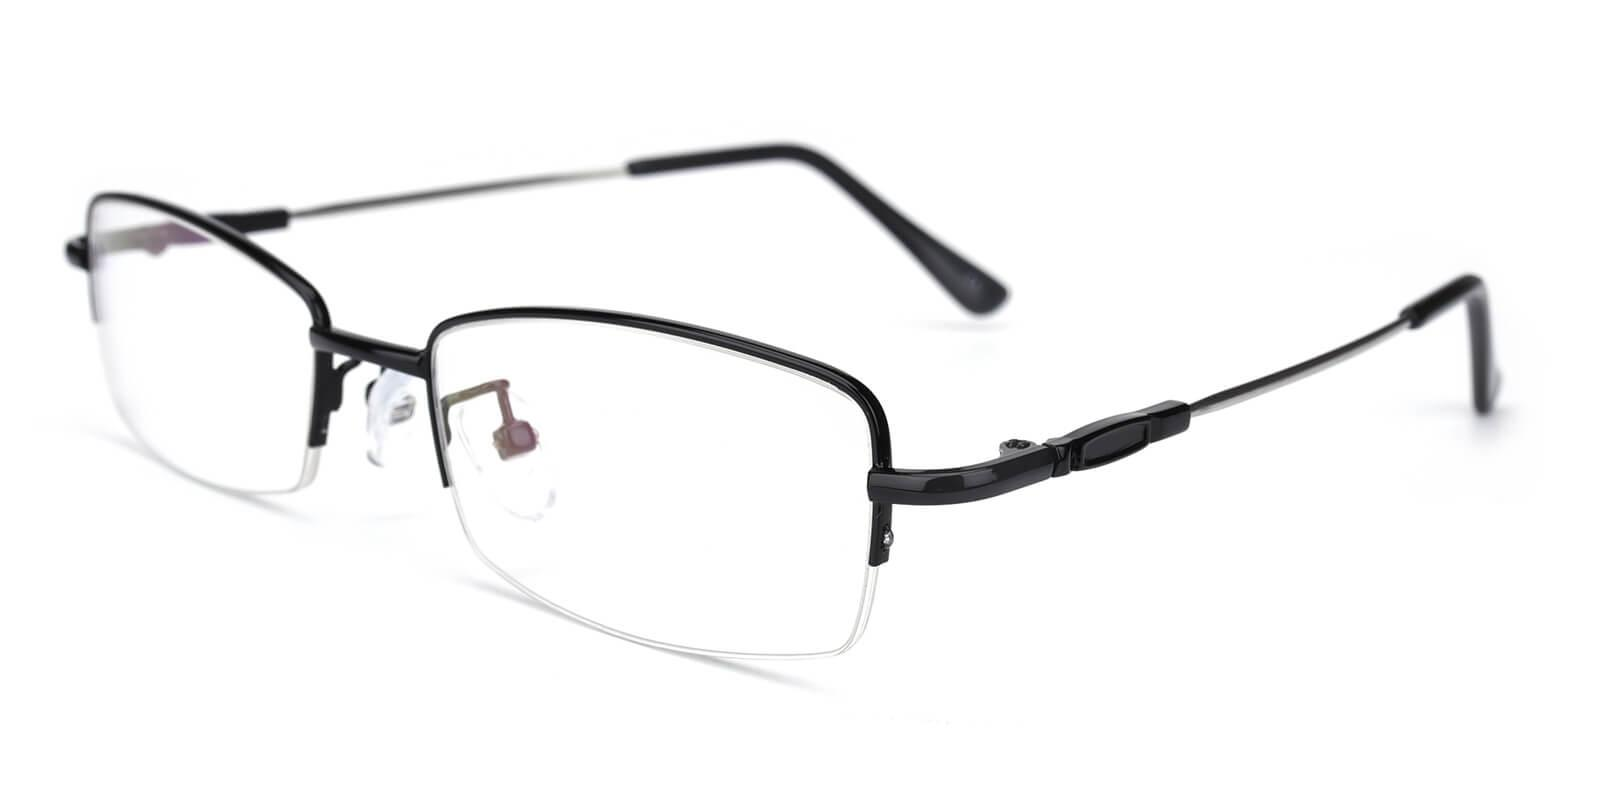 Healdton-Black-Rectangle-Metal-Eyeglasses-additional1